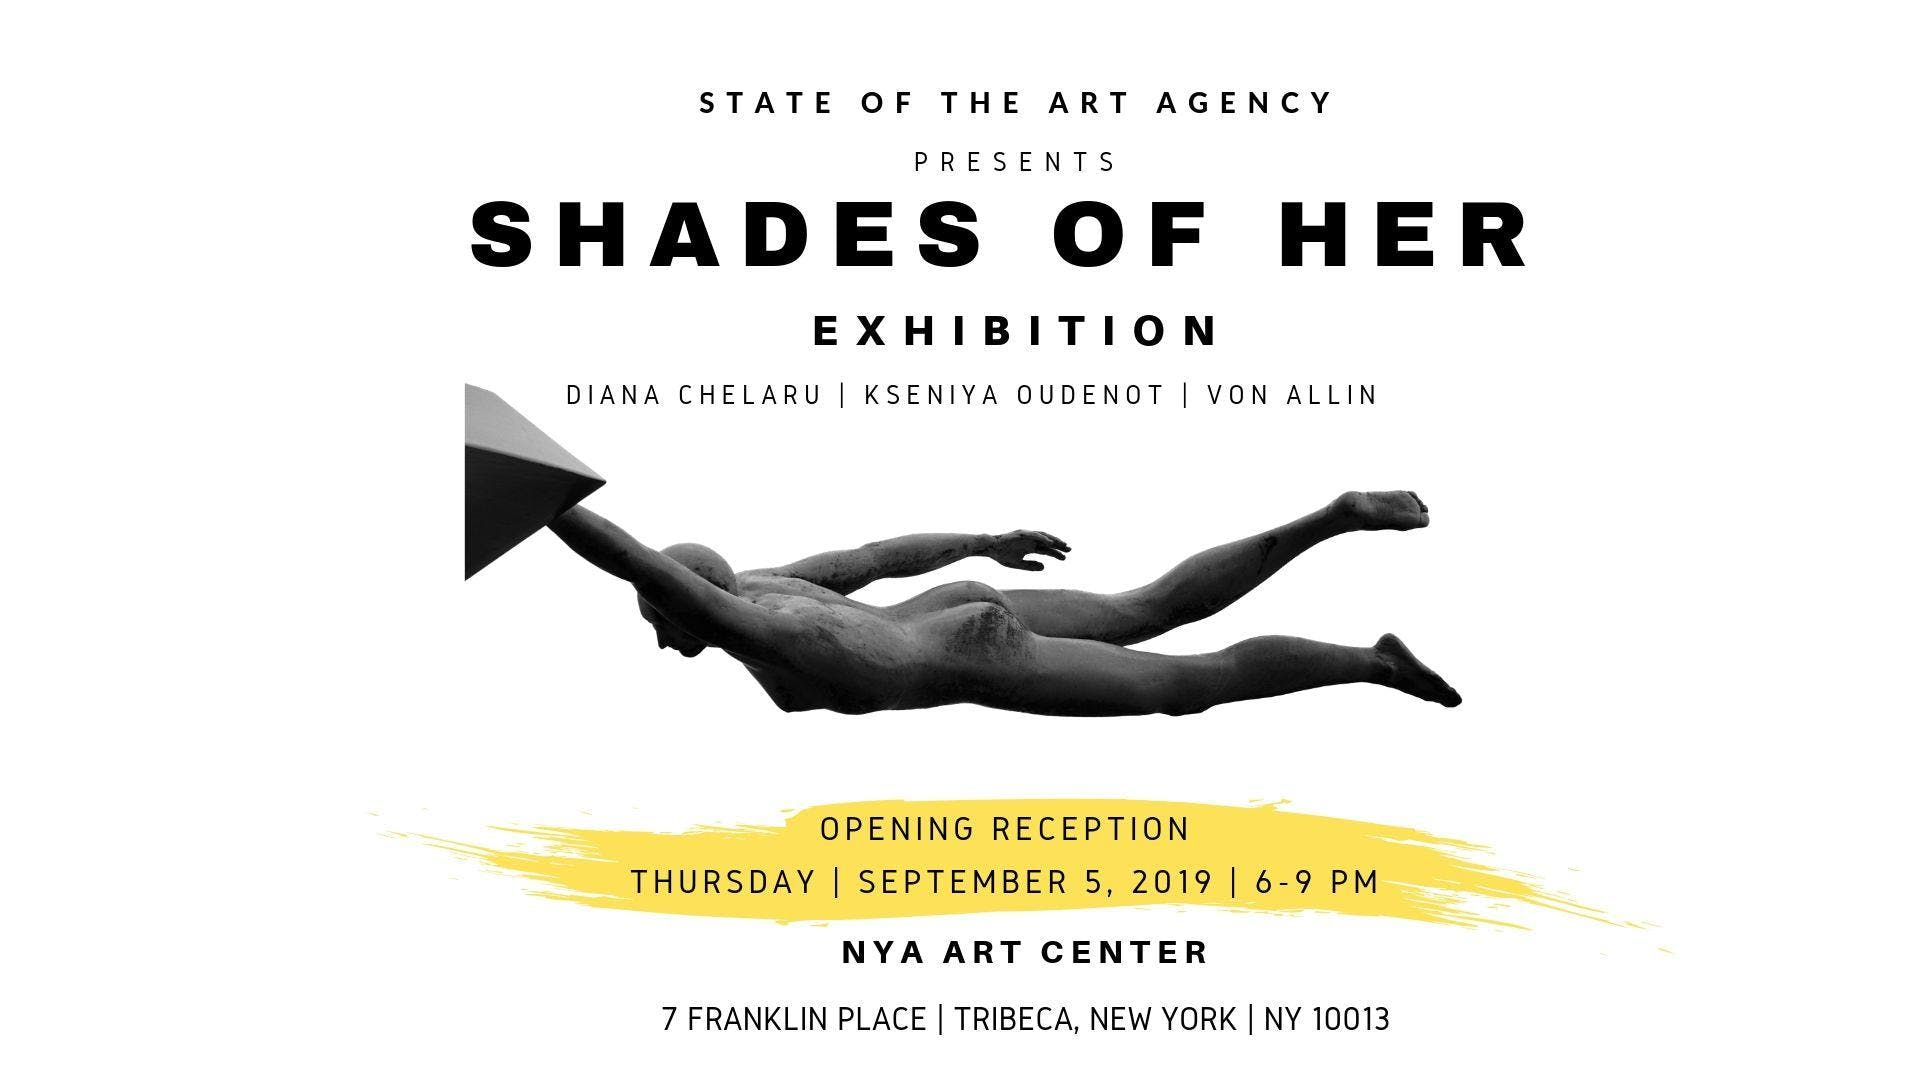 SHADES OF HER | STATE OF THE ART EXHIBITION